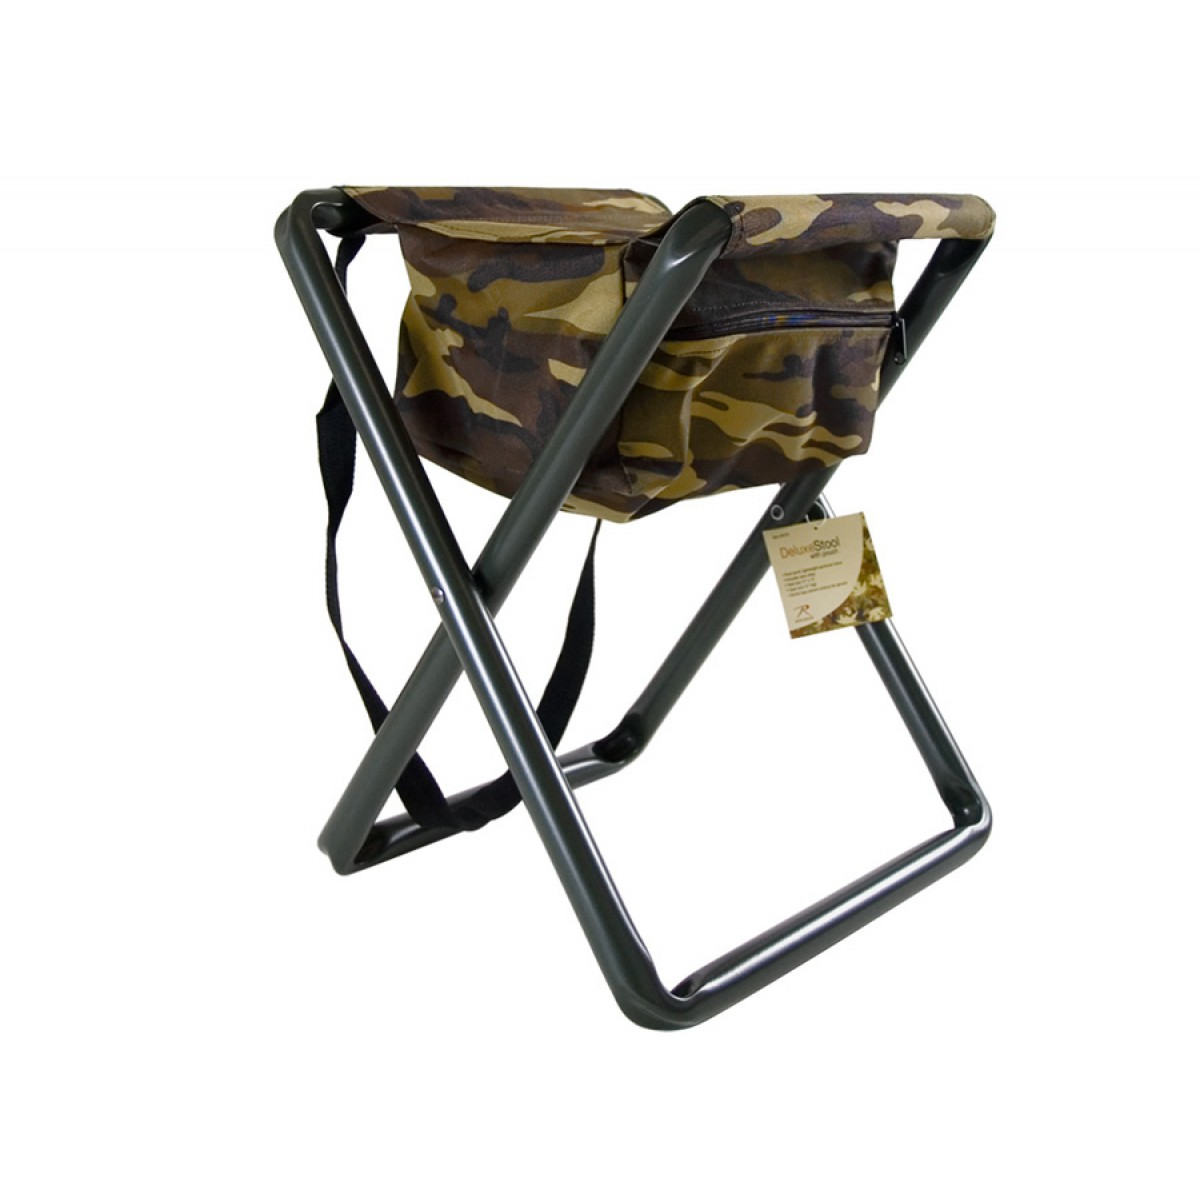 Rothco Camouflage Folding Steel Chair with Storage Pouch Kellyco